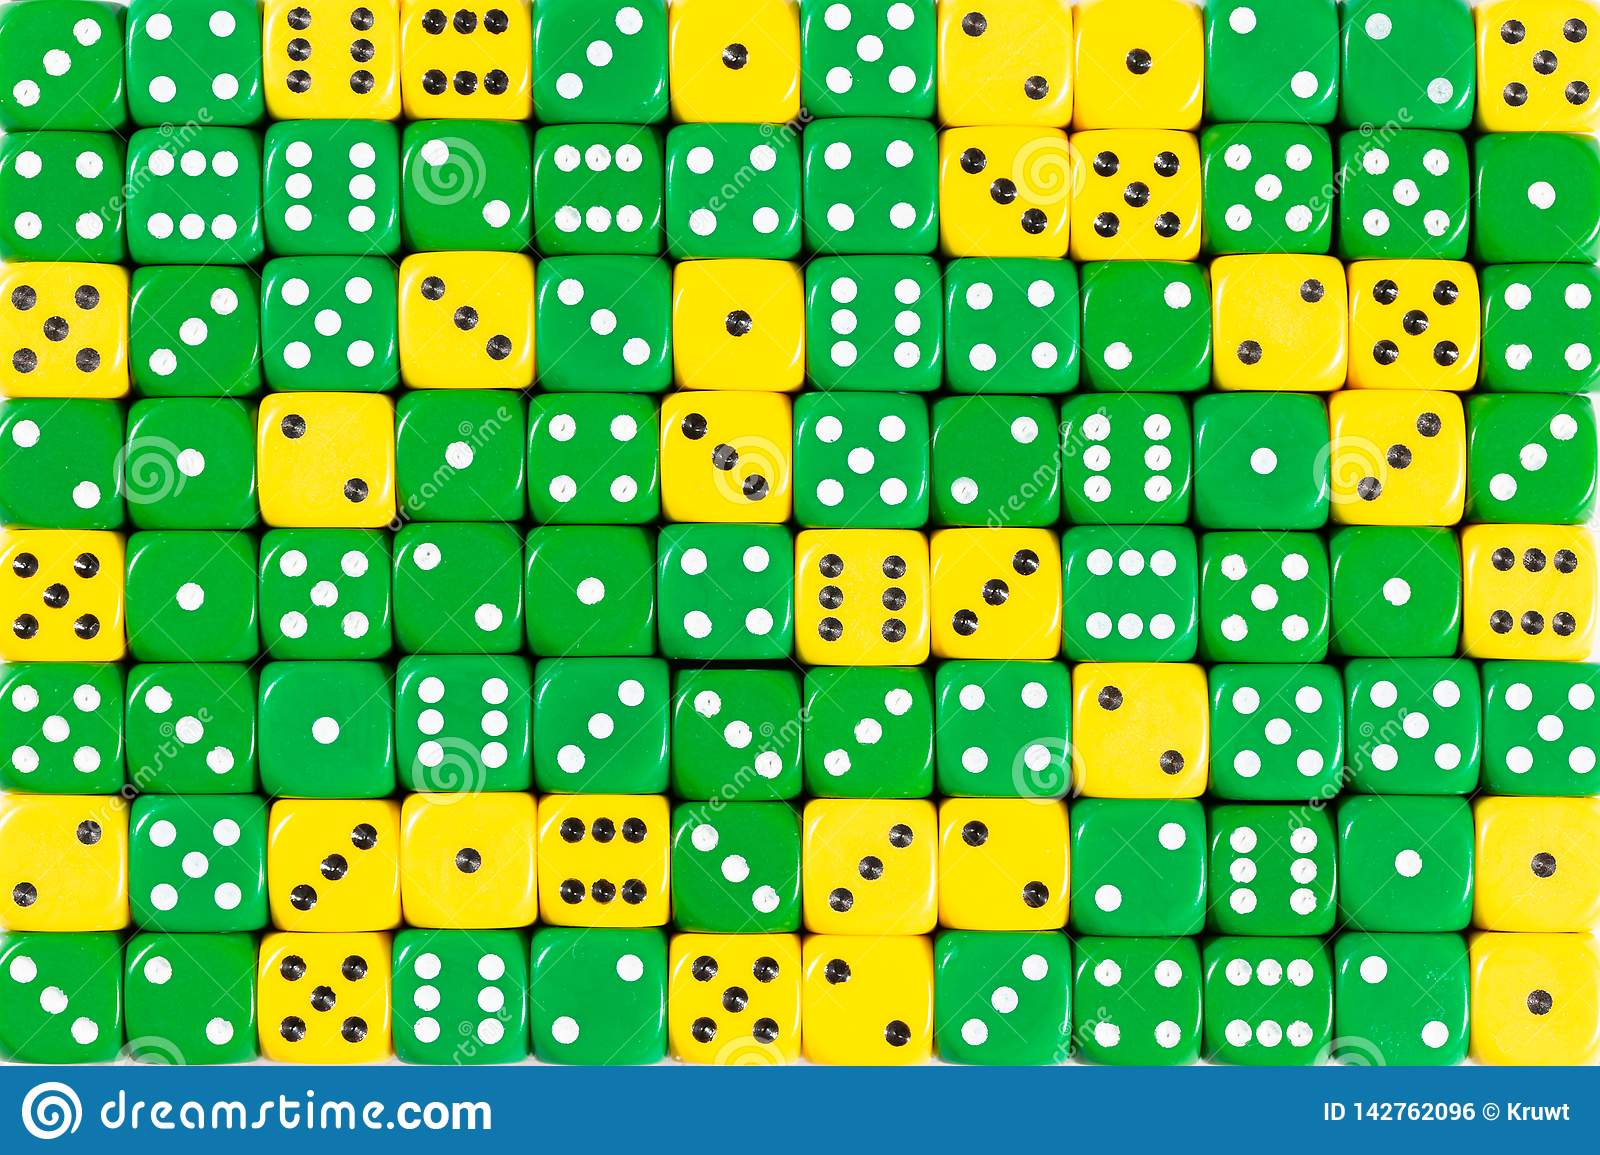 Background patteren of random ordered green and yellow dices